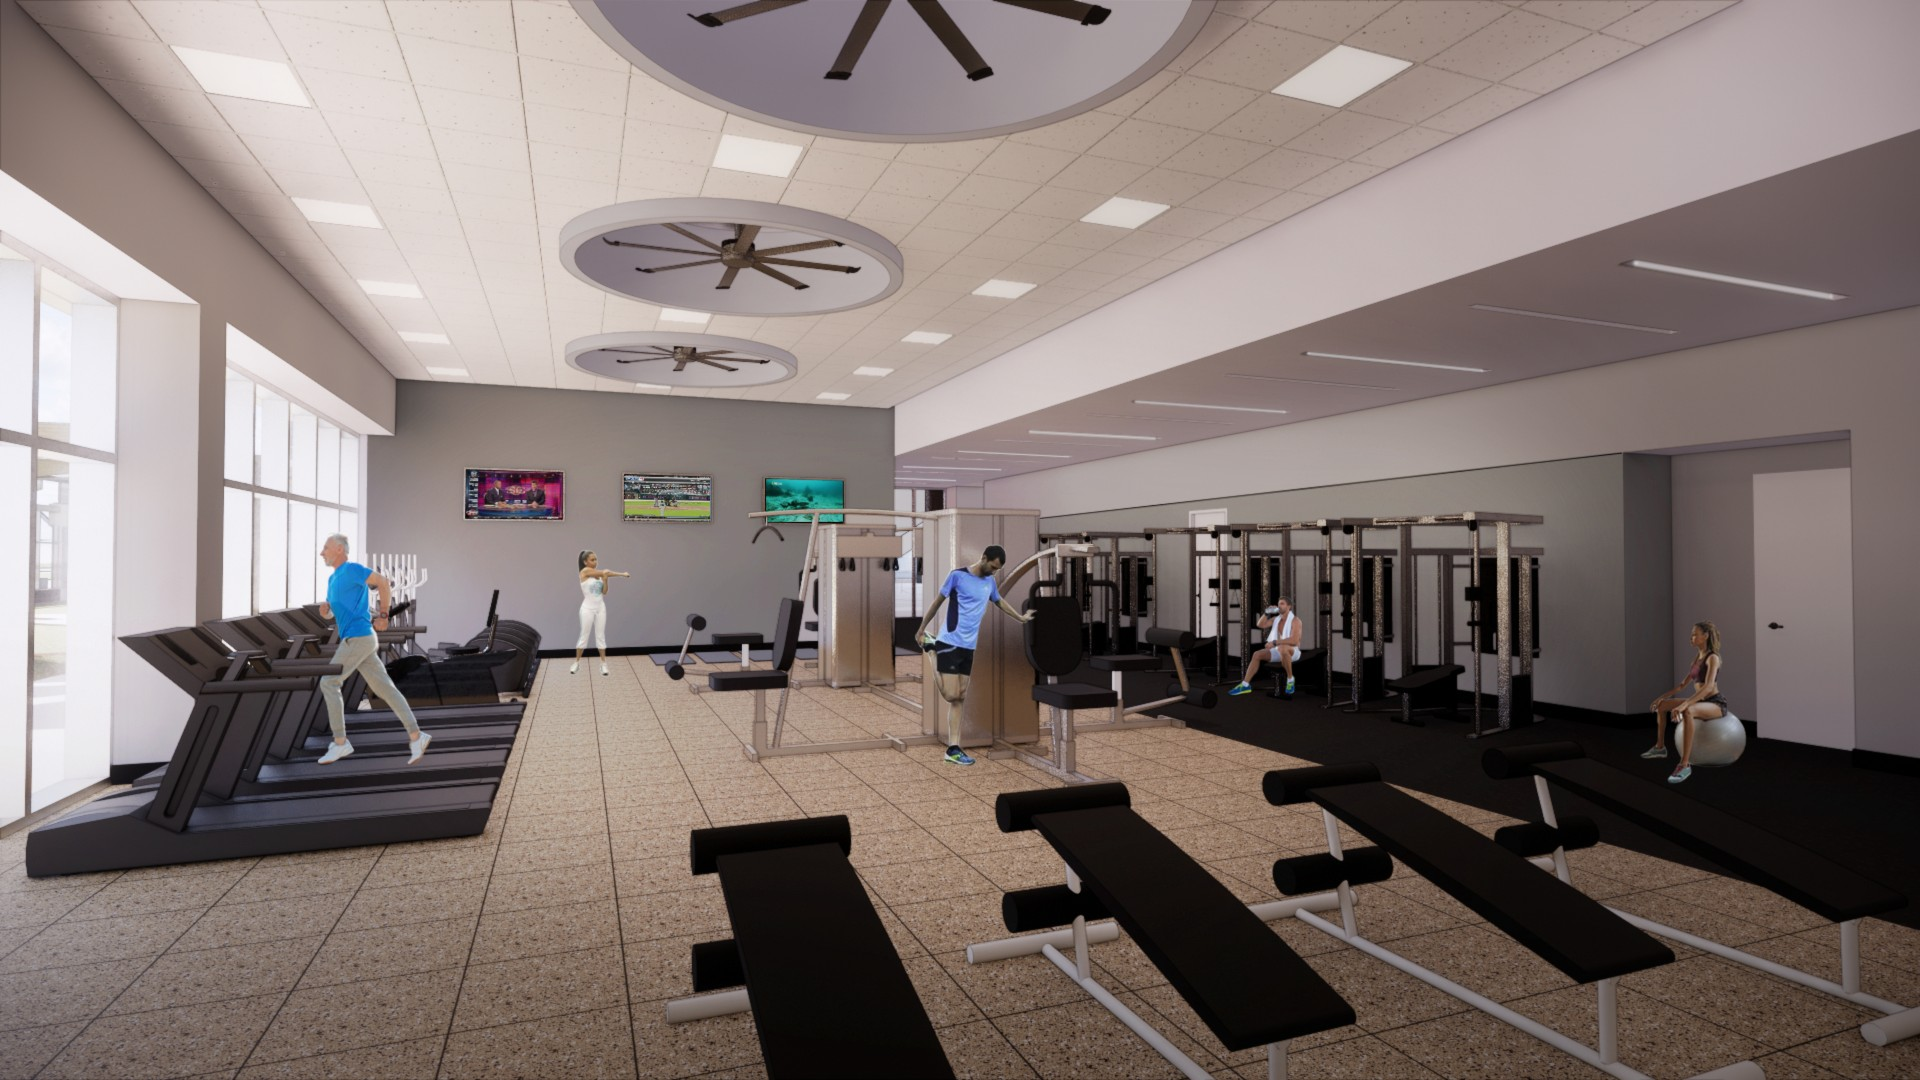 8_SkyCenter One Fitness Center